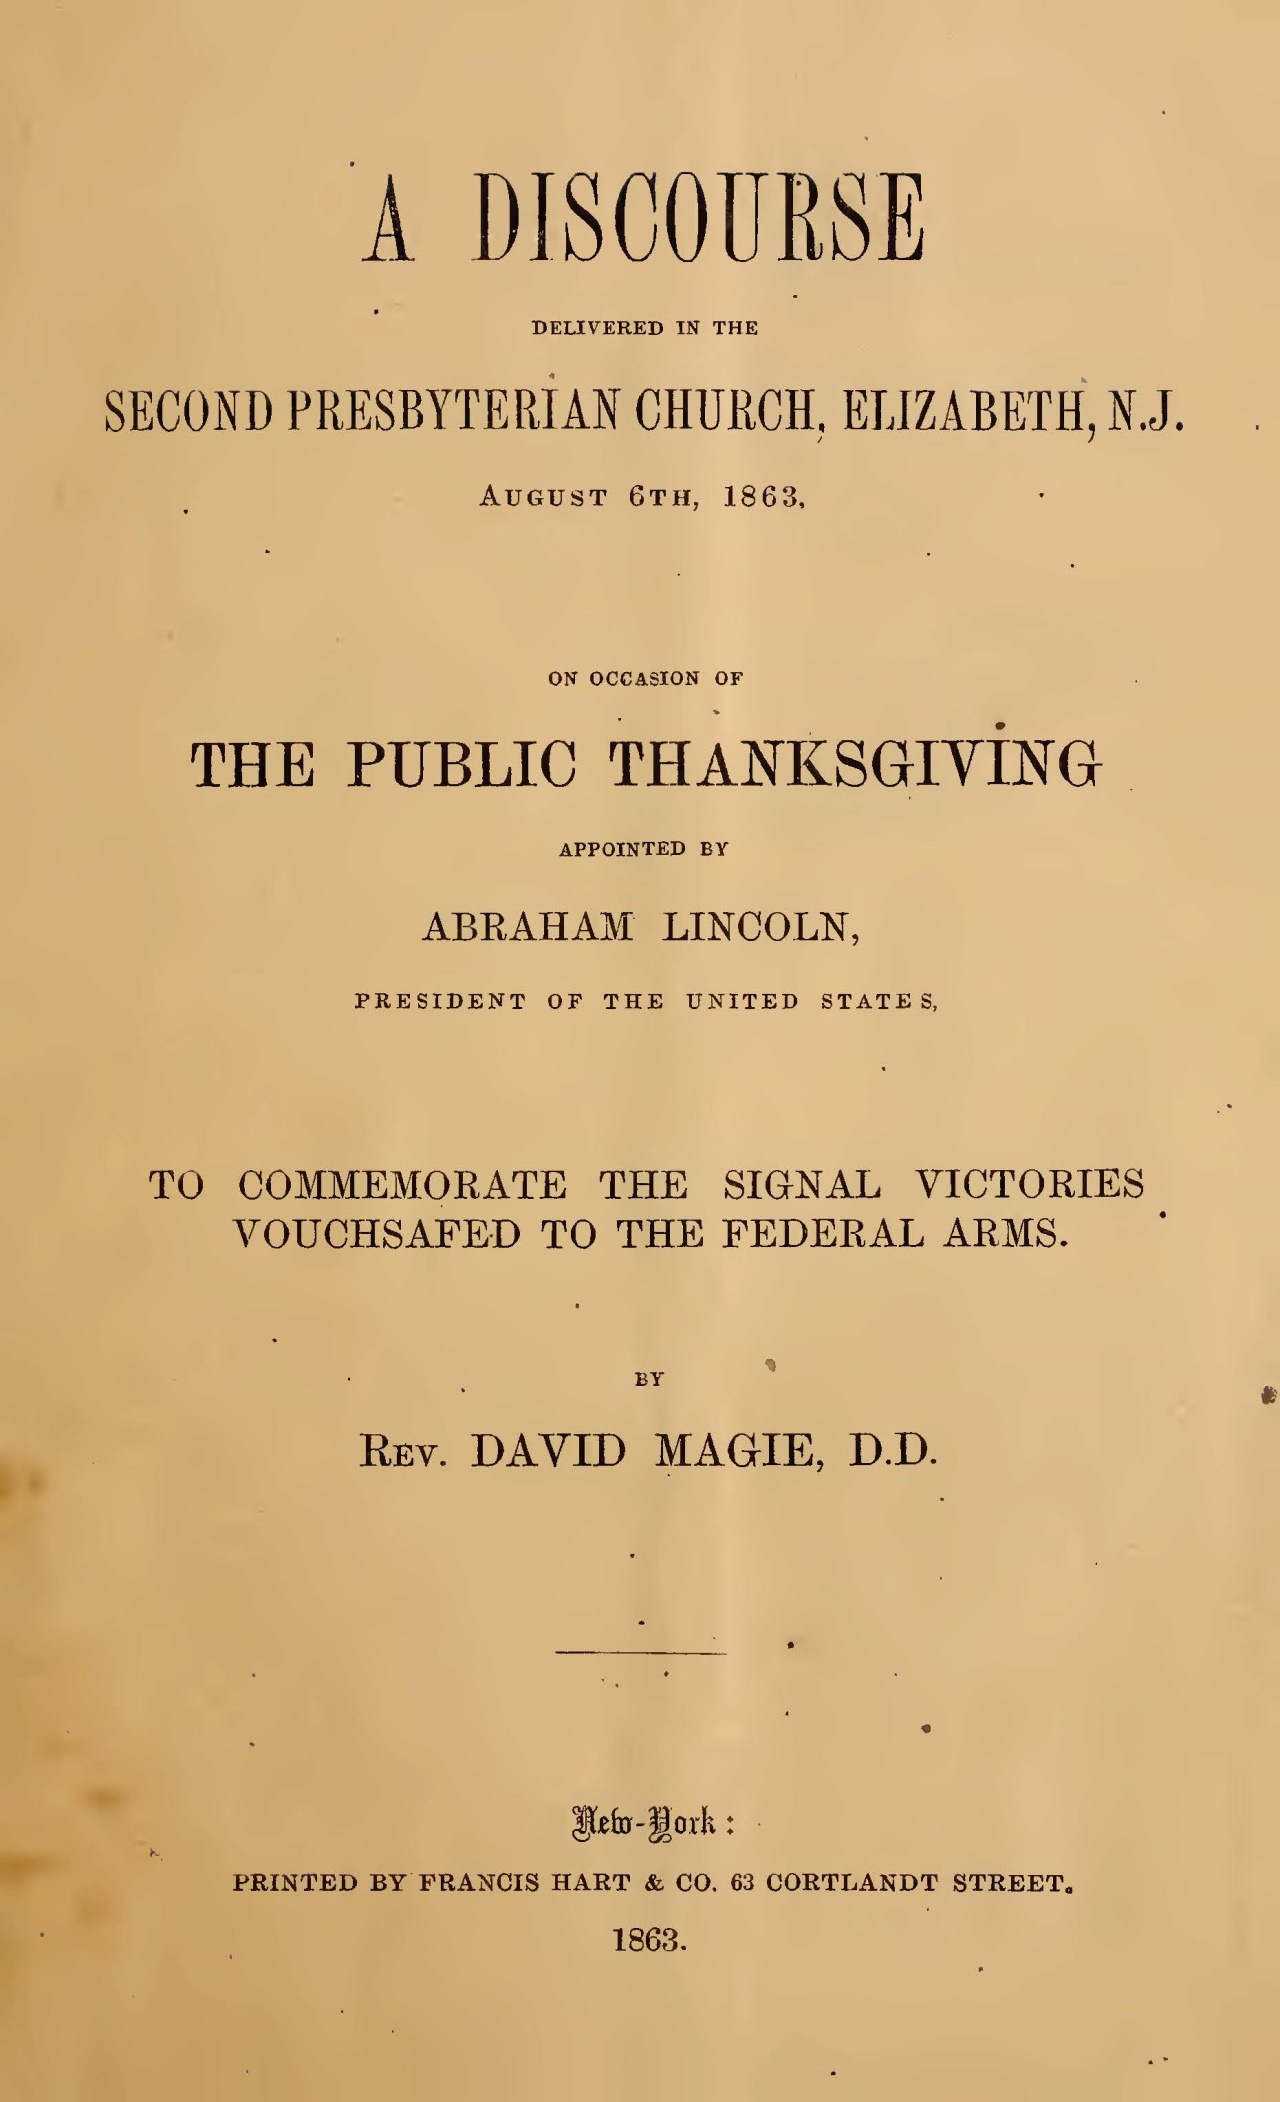 Magie, David, A Discourse Delivered in the Second Presbyterian Church Title Page.jpg